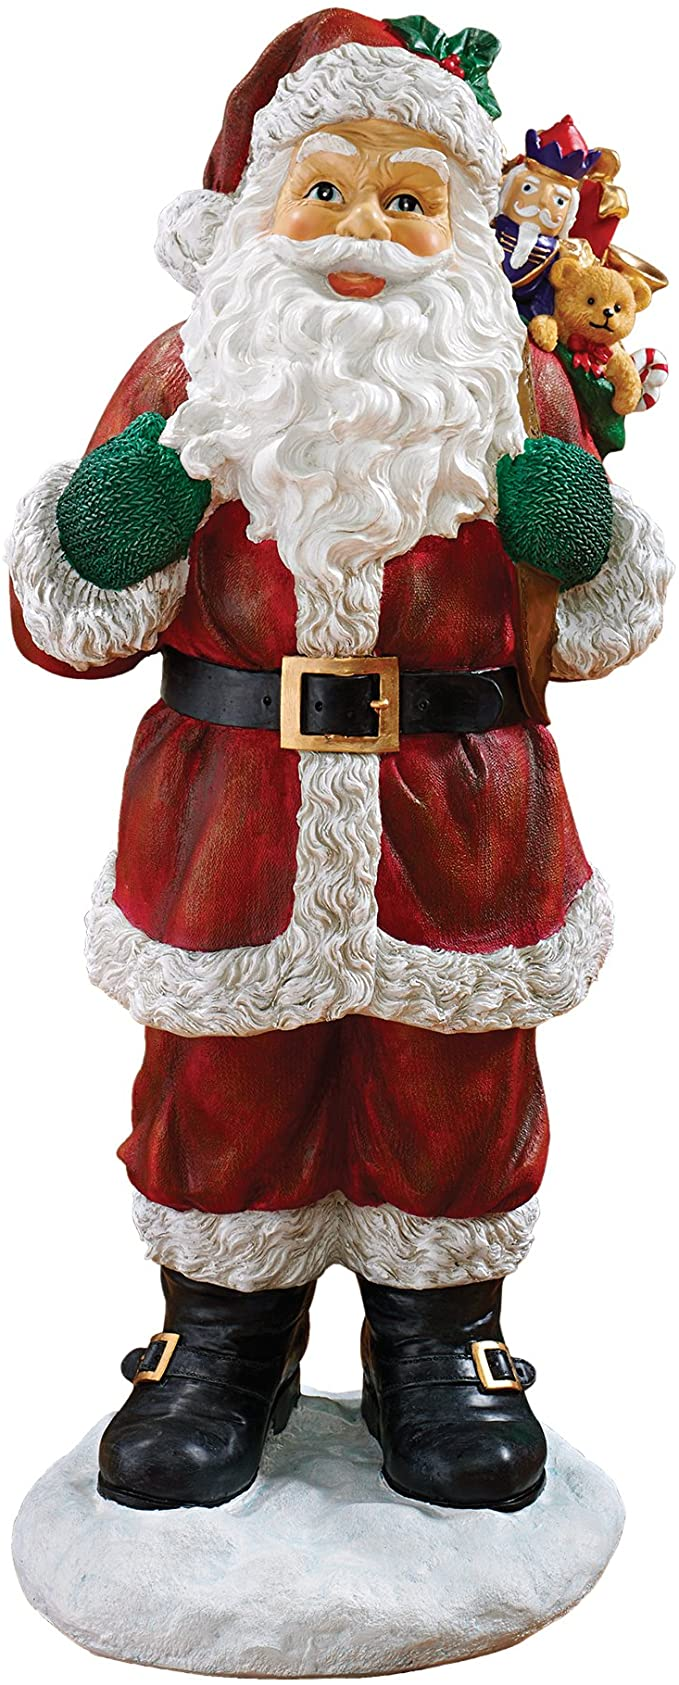 Amazon Com Christmas Decorations A Visit From Santa Claus And His Bag Of Christmas Toys Holiday Decor Statue Garden Outdoor